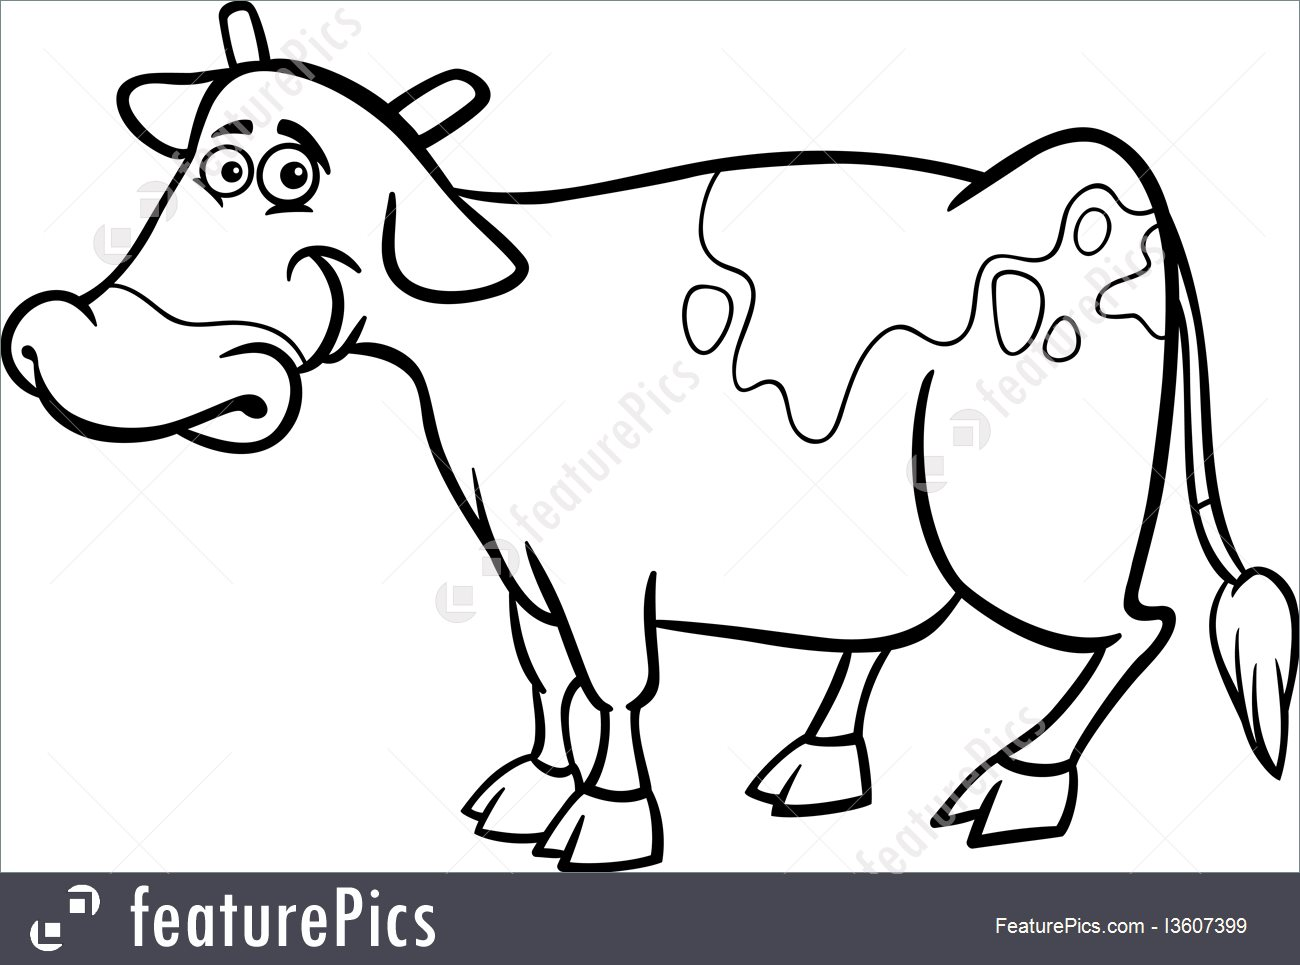 Cartoon Drawing Of A Farm at GetDrawings.com | Free for personal use ... for Farmhouse Cartoon Black And White  111ane